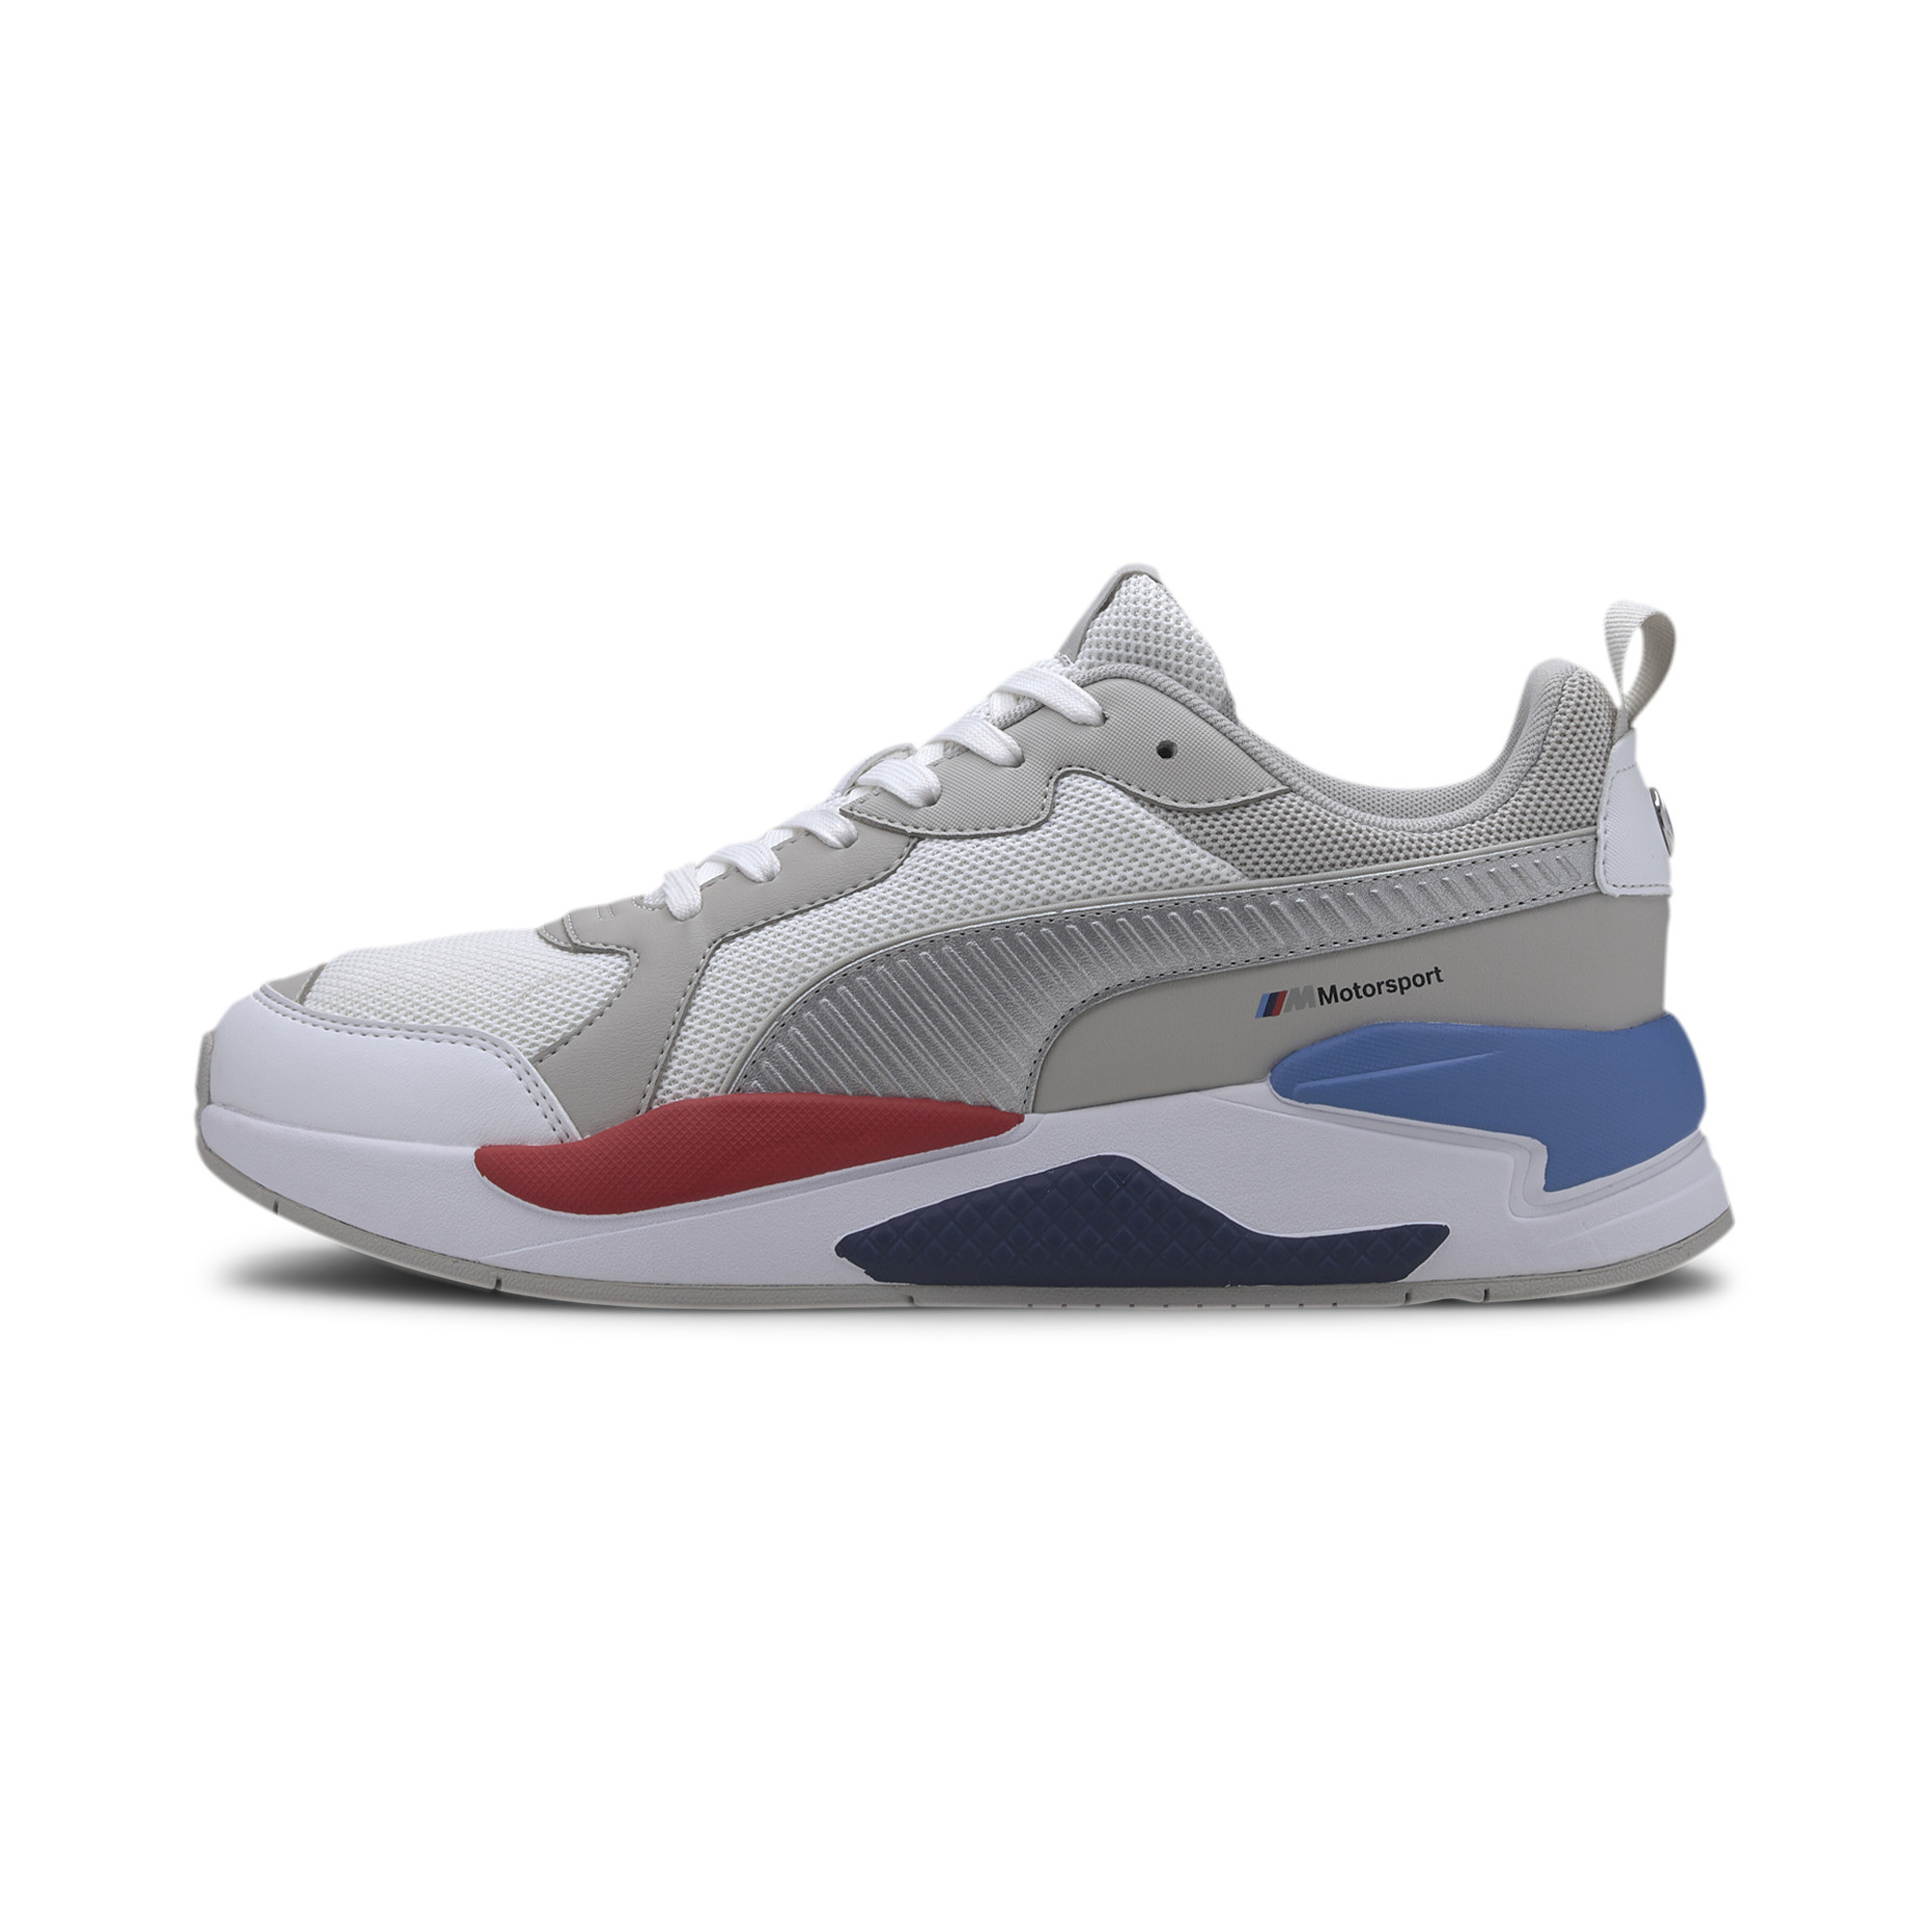 PUMA-Men-039-s-BMW-M-Motorsport-X-RAY-Sneakers thumbnail 12